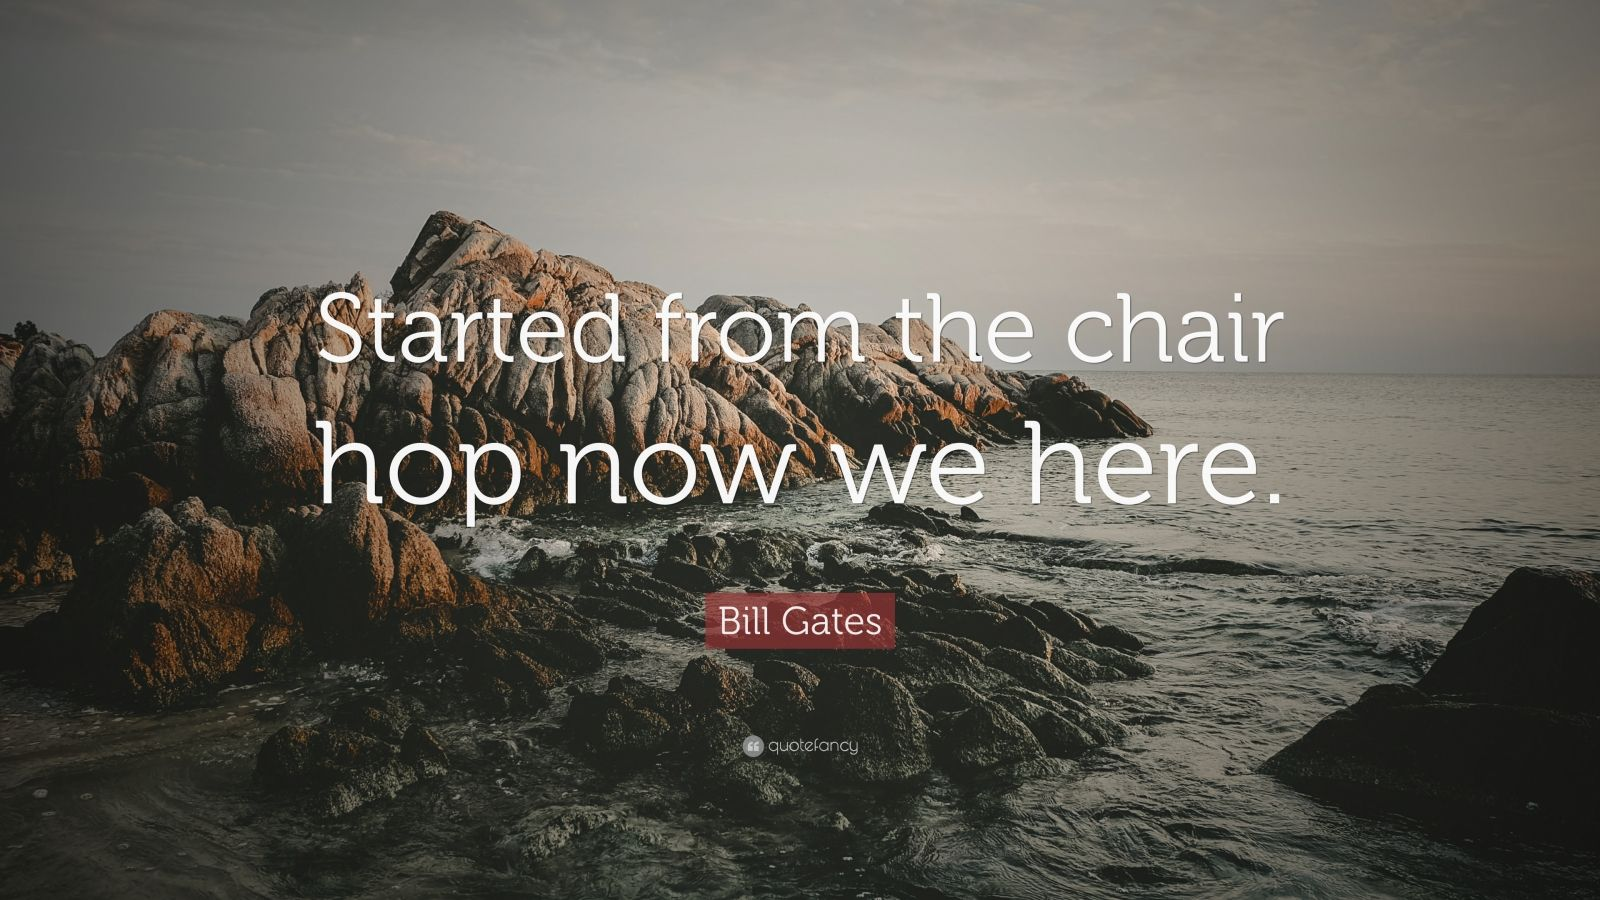 """Bill Gates Quote: """"Started from the chair hop now we here."""""""